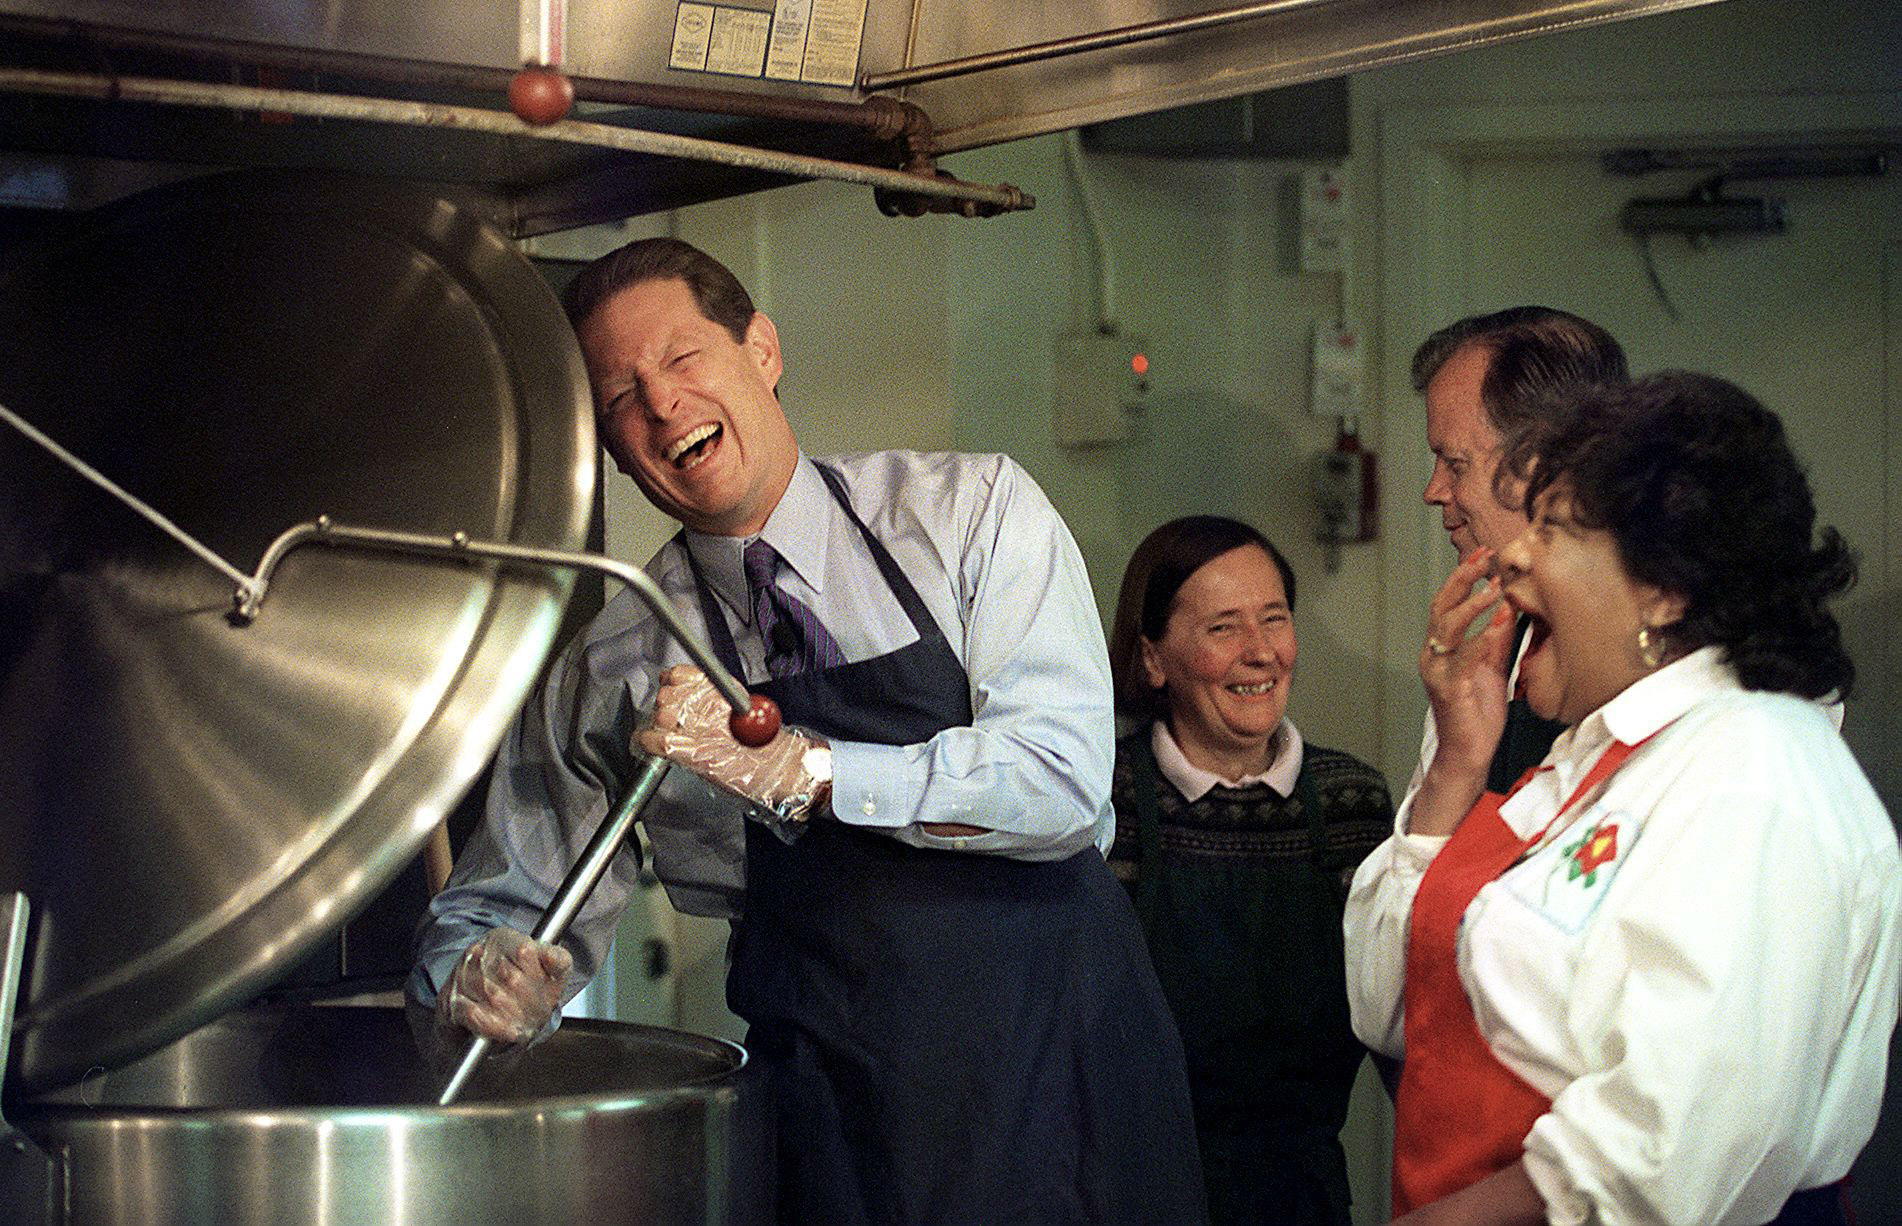 Vice President and presidential candidate Al Gore laughs as he stirs a vegetable stew as volunteer Veronica Park(2nd-L), Rep. Tony Hall, D-OH, and volunteer Olivia Ivy(R) look on during food preparation for the homeless as part of World Hunger Day Oct. 15, 1999, at Martha's Table in Washington, DC.